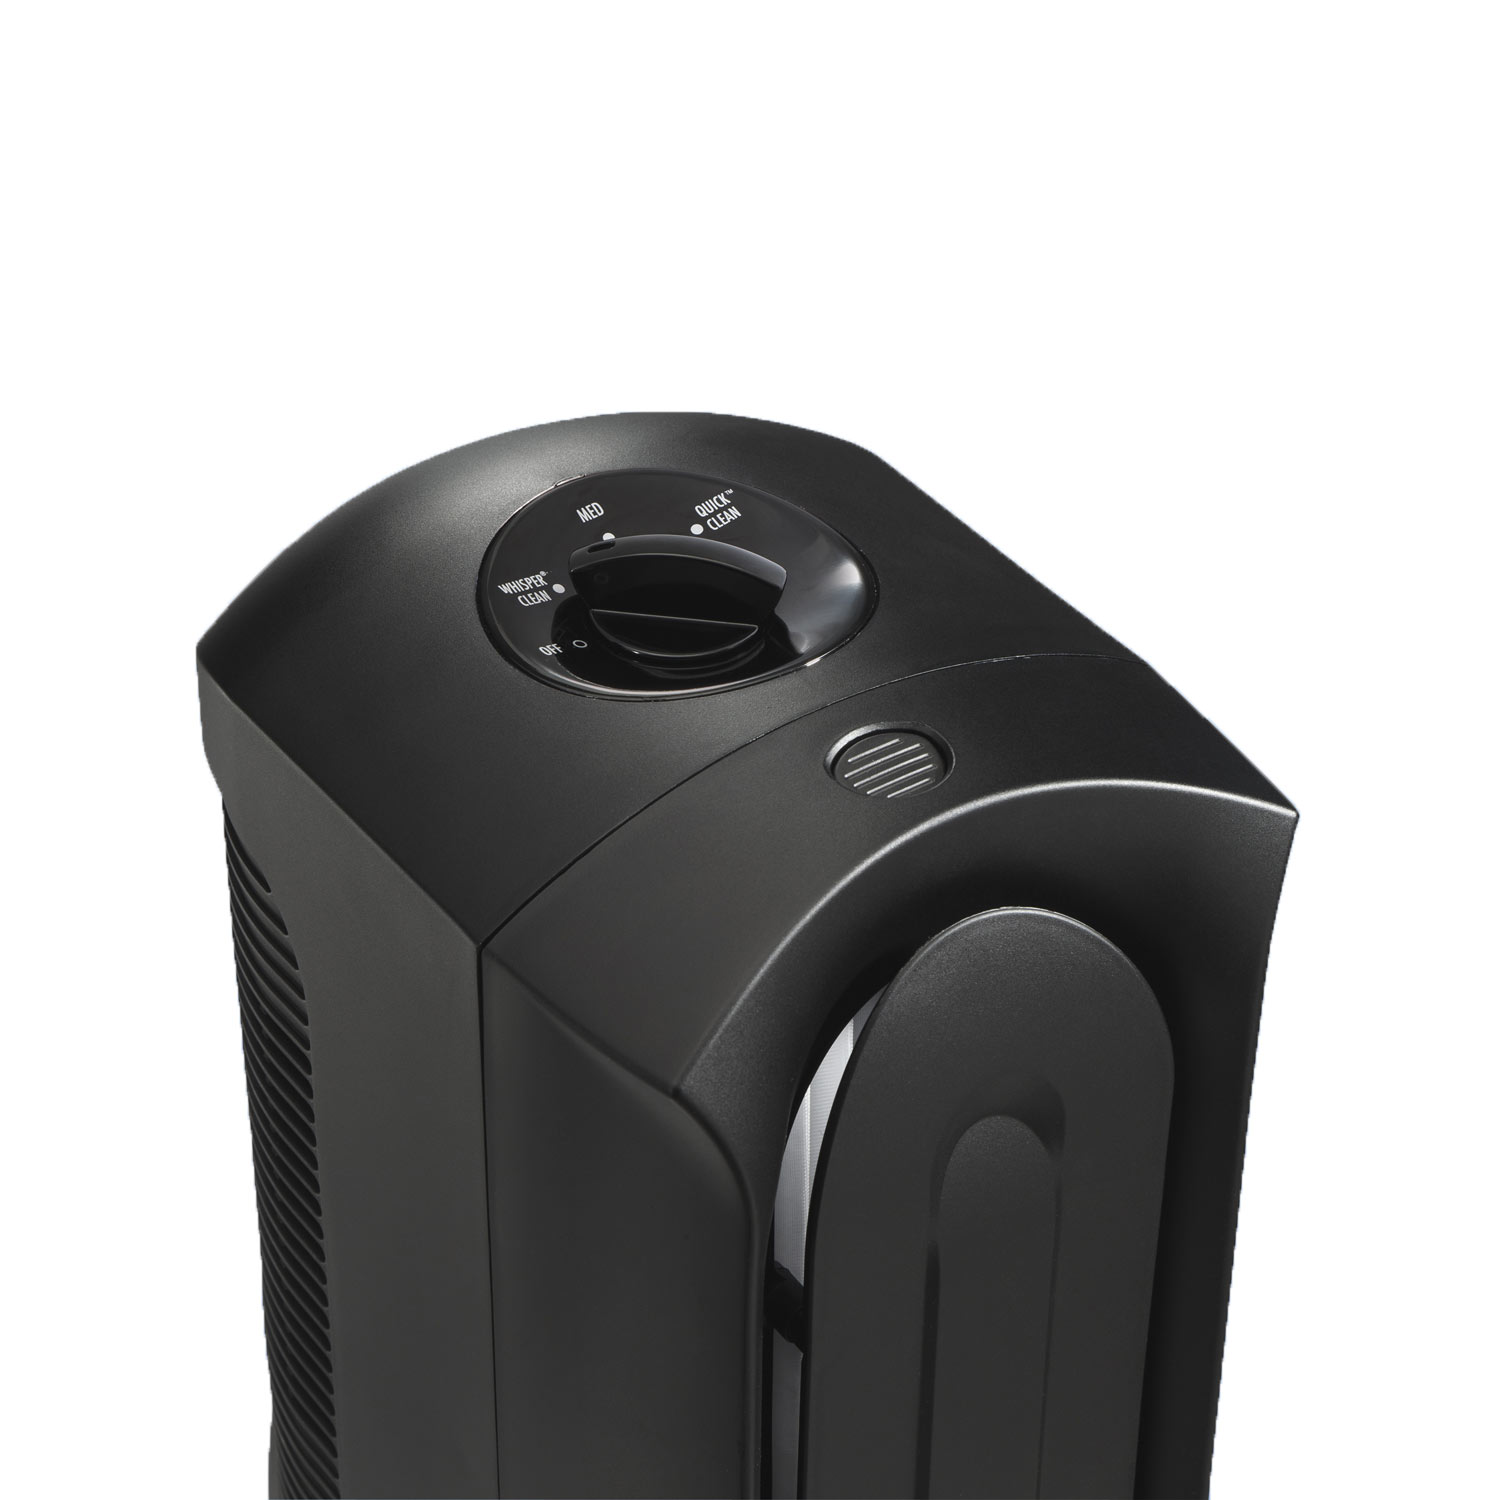 TrueAir Compact Air Purifier 04386 is ultra quiet with 3-speed operation that gives you ultimate control.